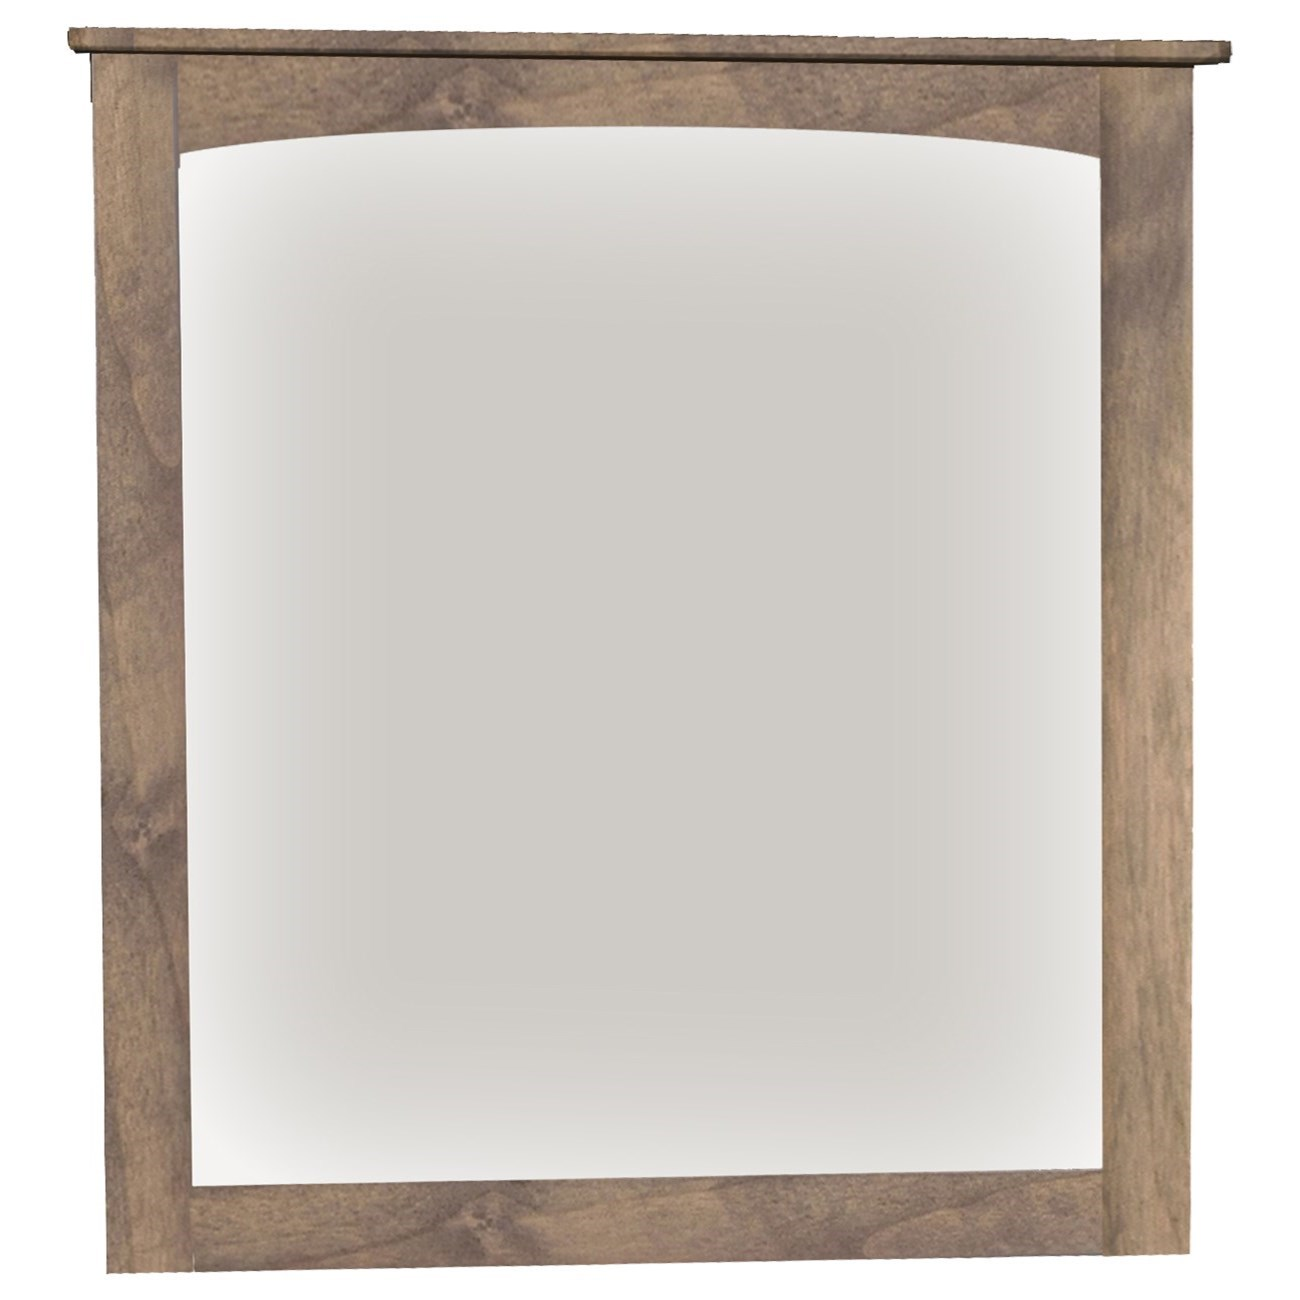 Alder Heritage Mirror by Amish Traditions at Sprintz Furniture